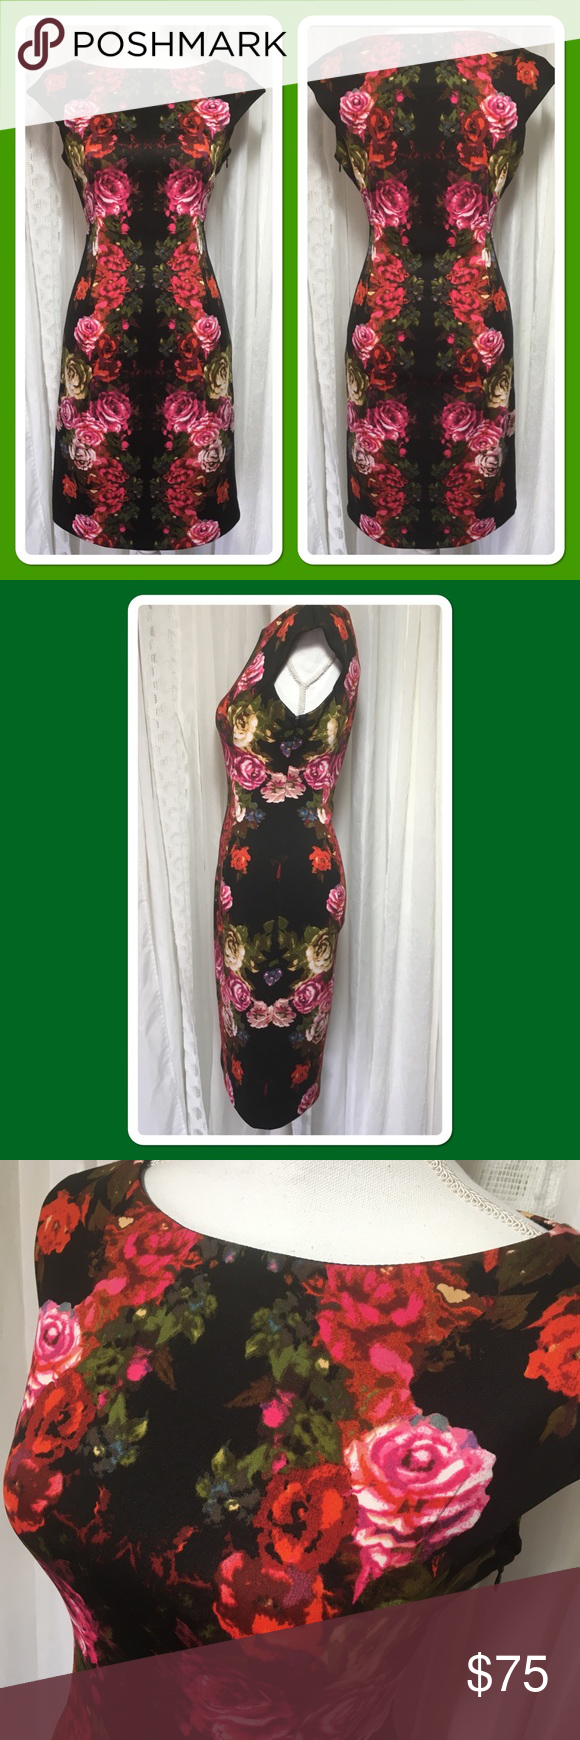 Maggy london black dress with roses size boat neck pink roses